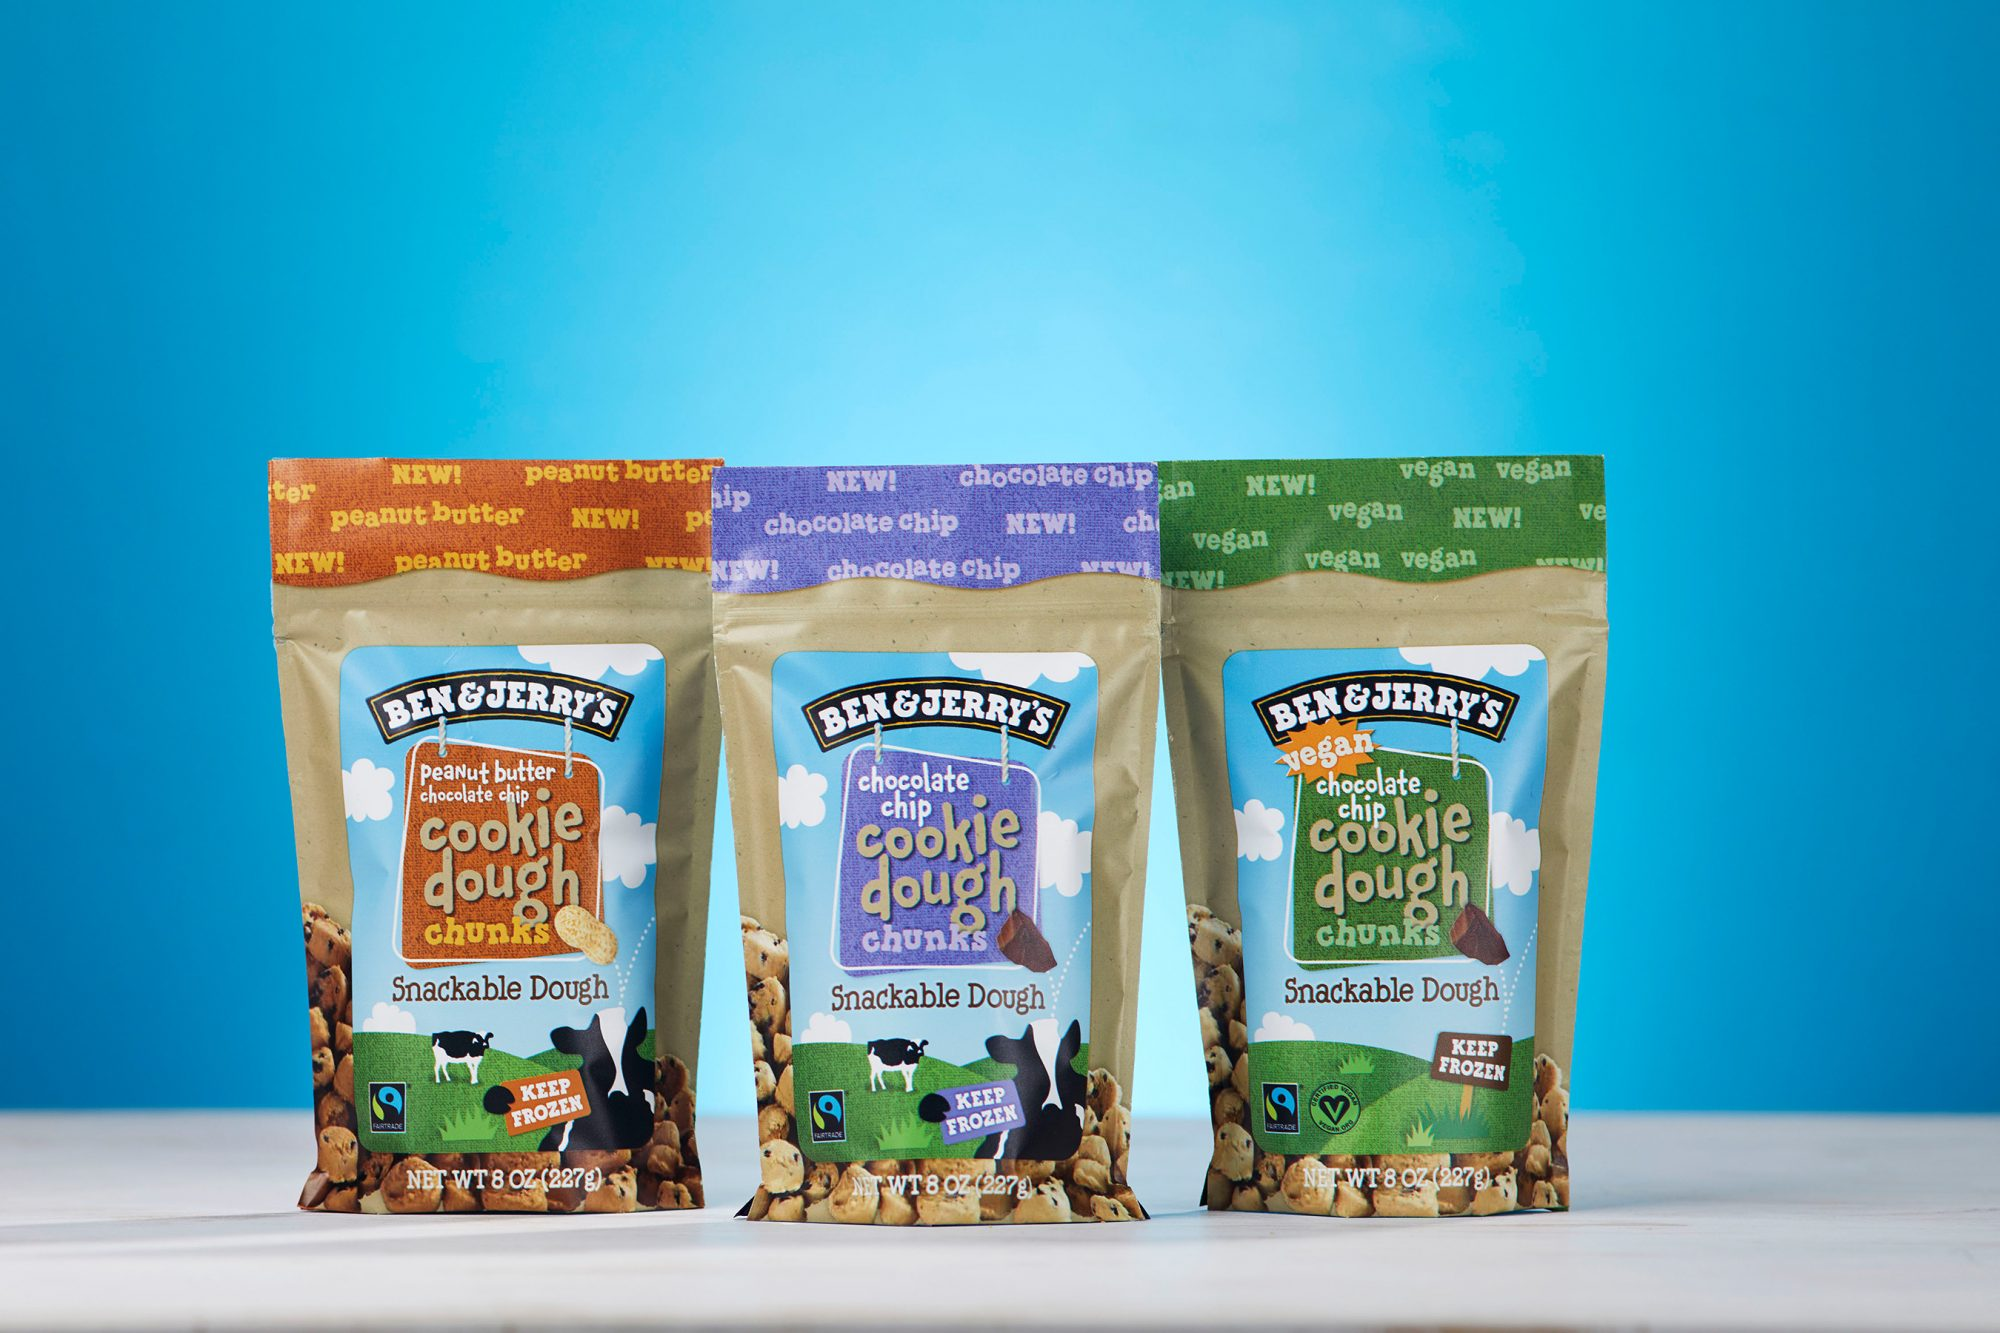 Ben & Jerry's Cookie Dough Snacks